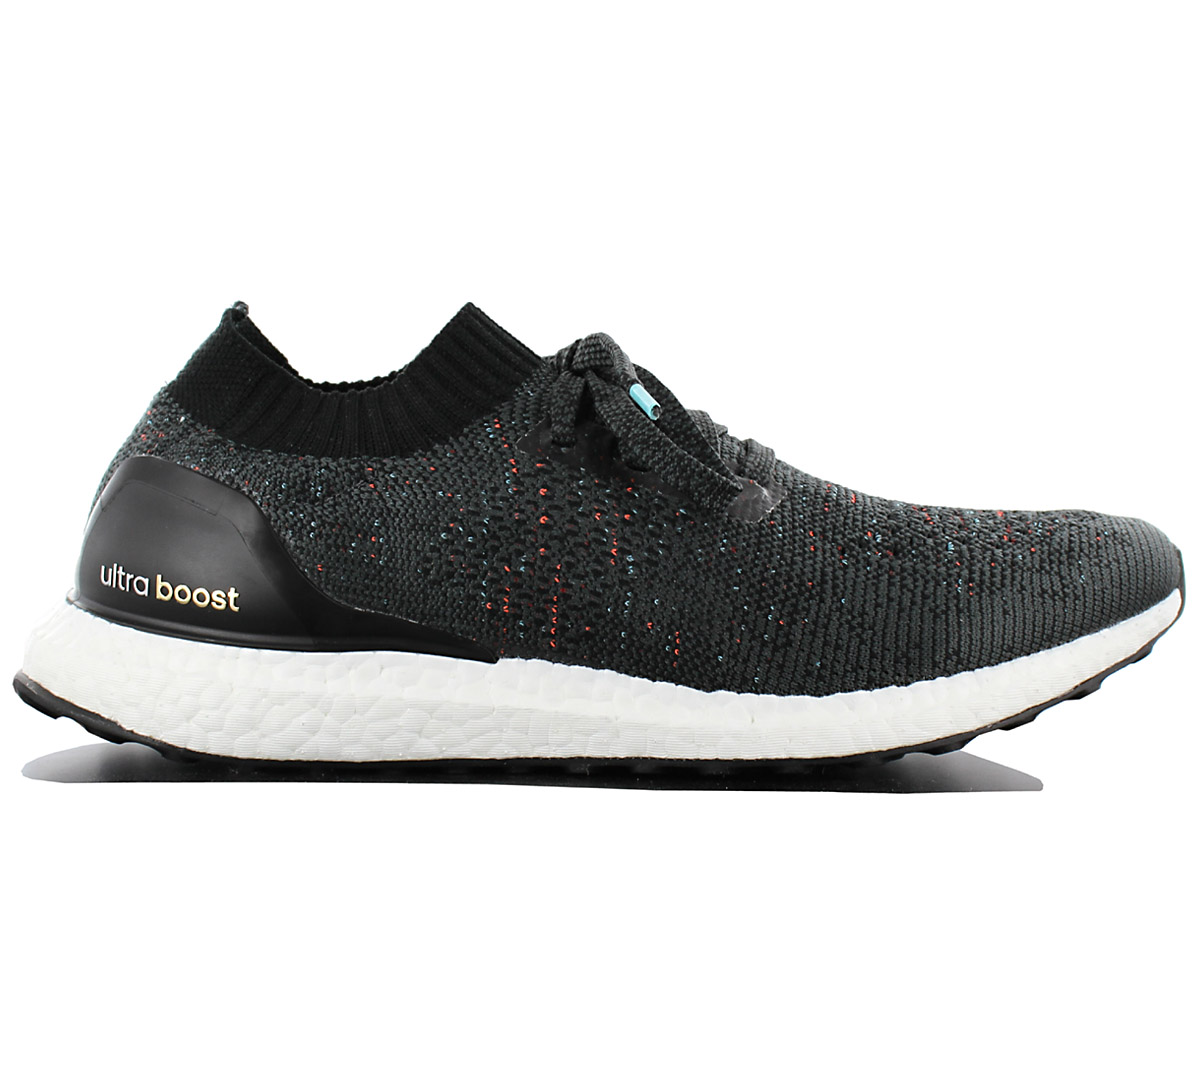 c244cc56e2408 Adidas Ultra Boost Primeknit Uncaged Men s Shoes Ultraboost Running ...